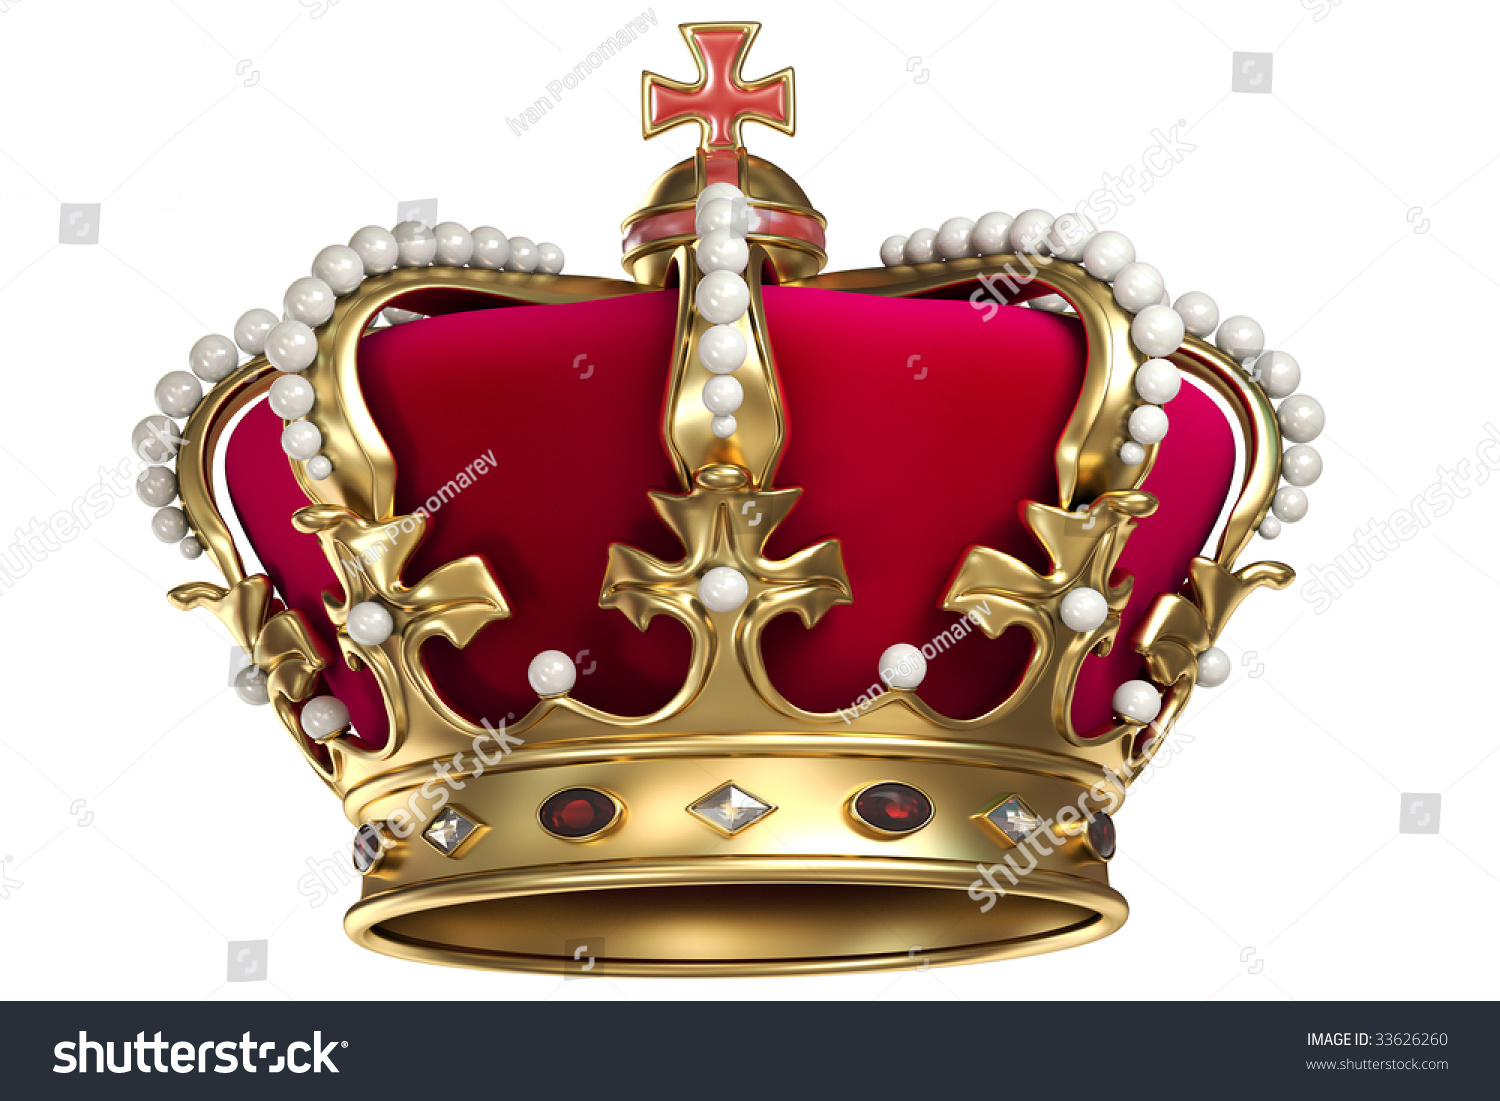 Gold crown background - photo#53